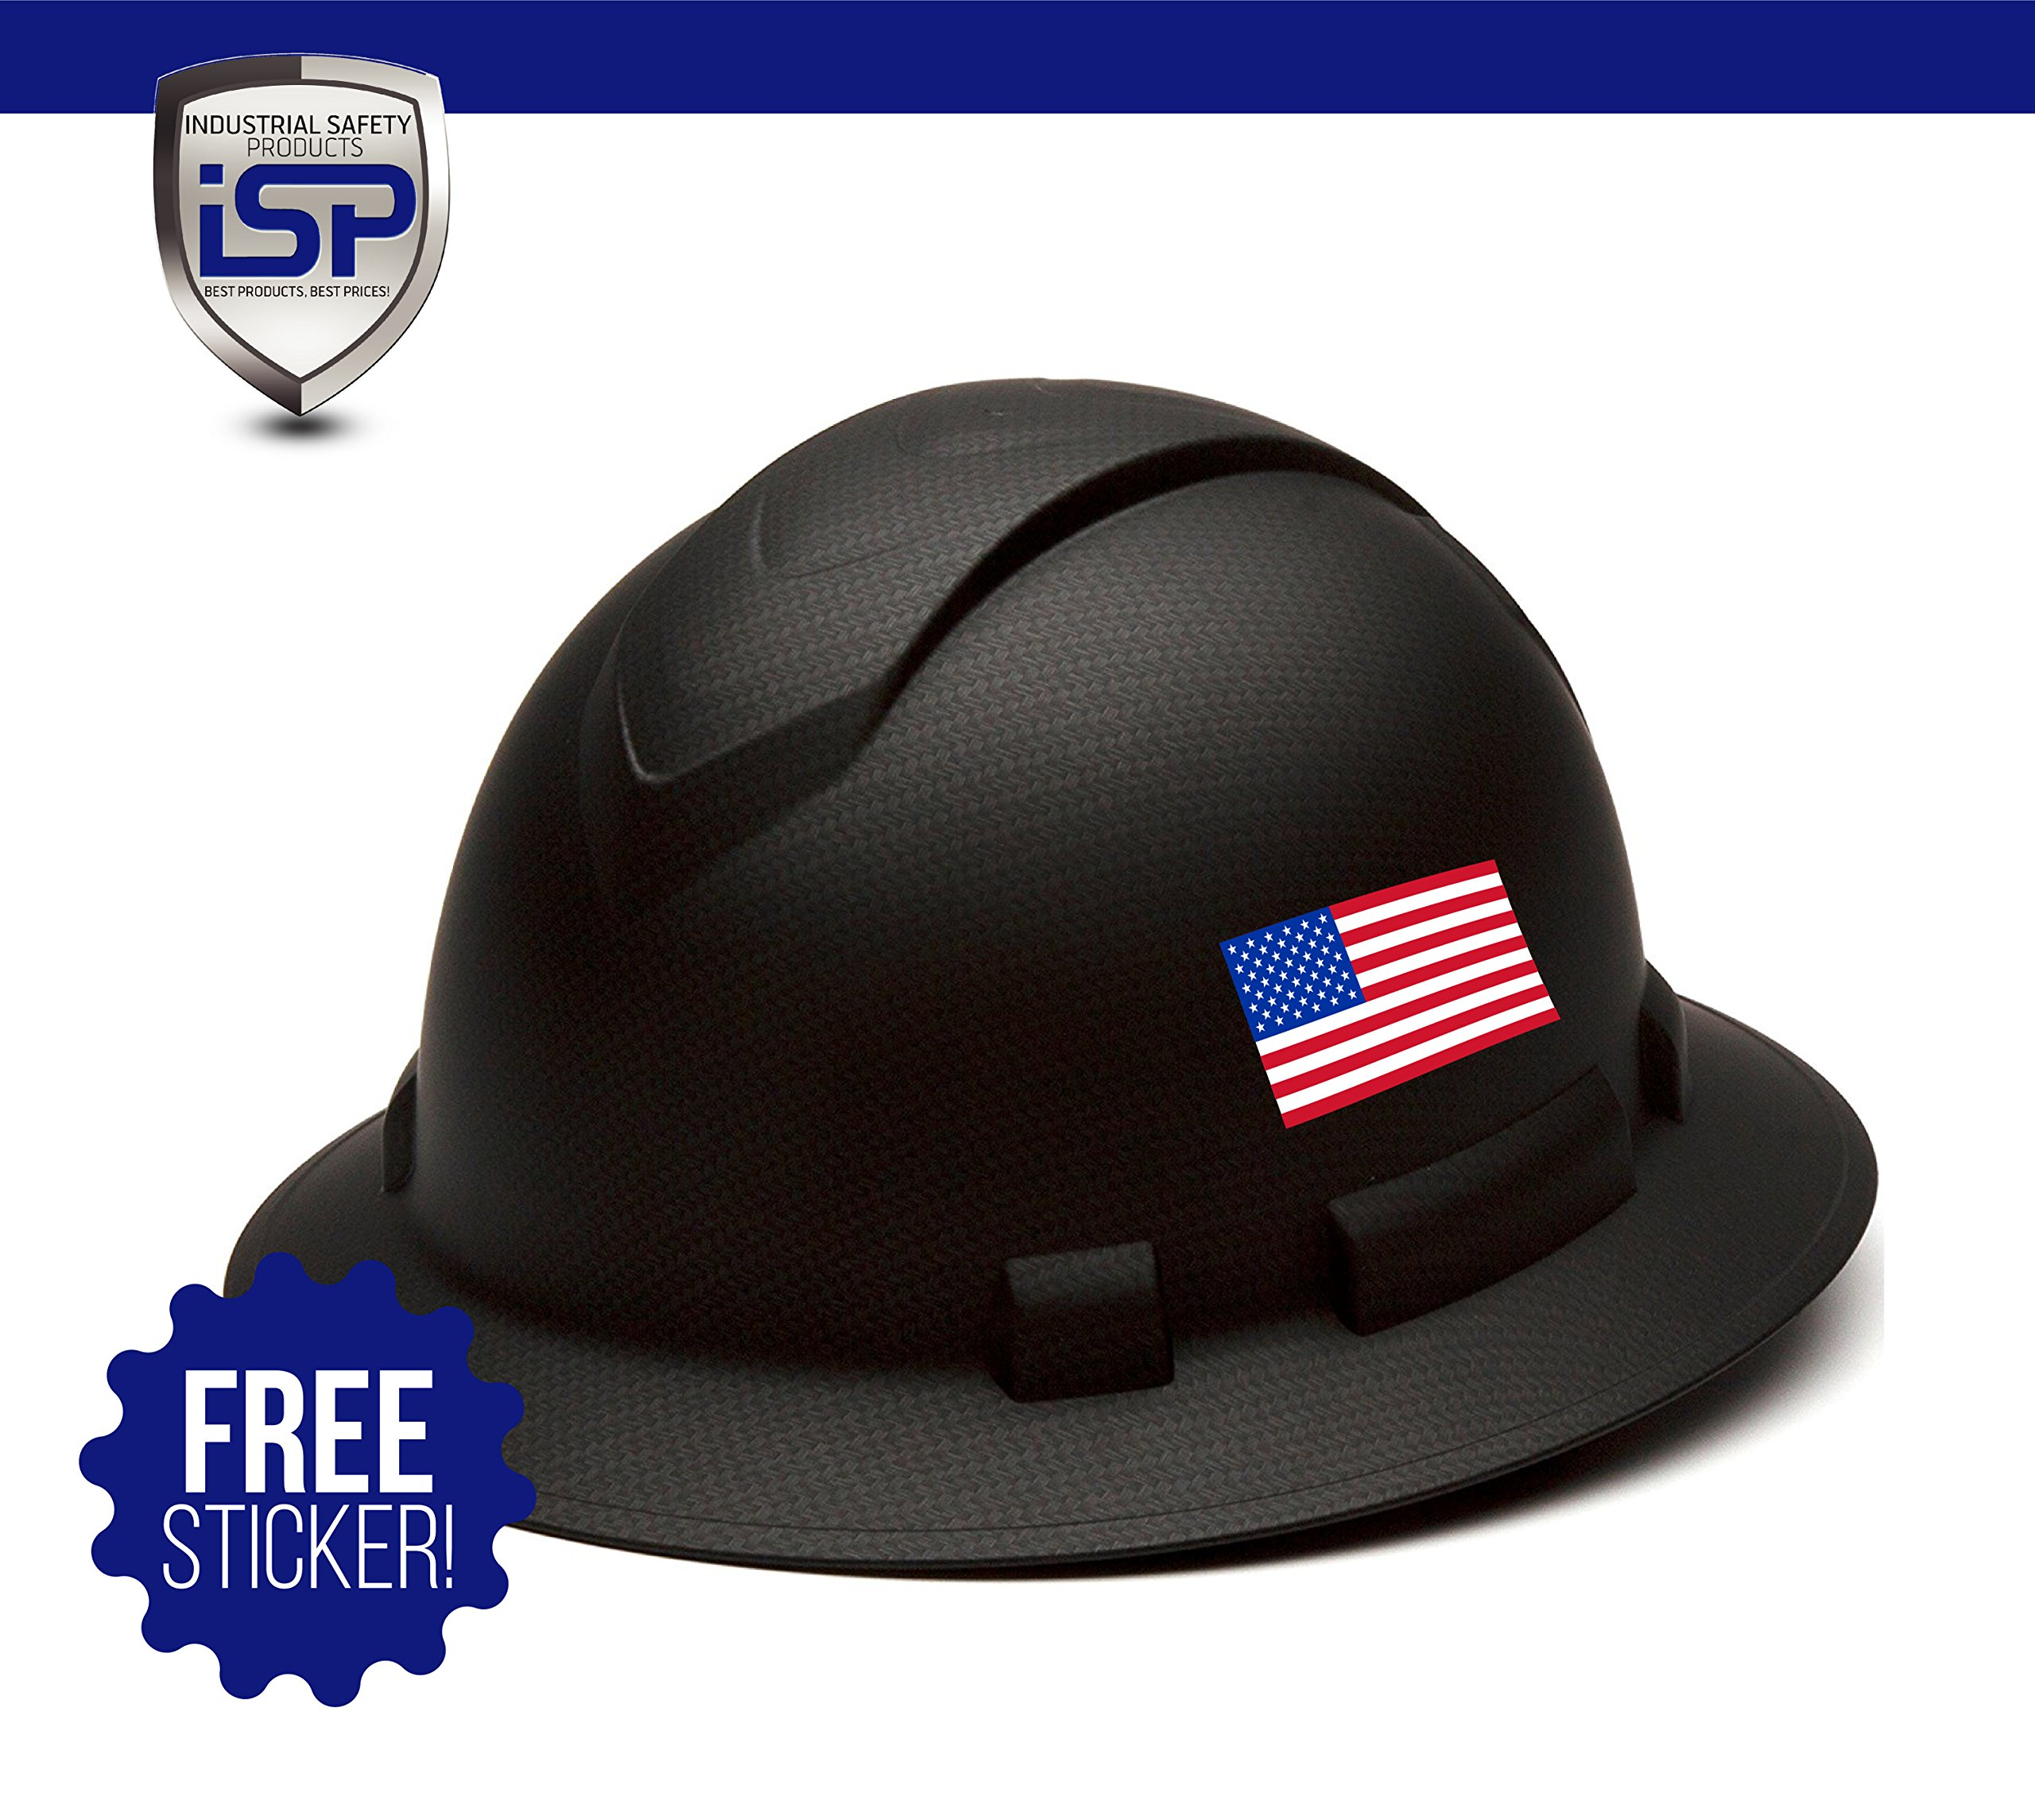 Pyramex Full Brim RIDGELINE Patterned Hard Hat with 6 Point Ratchet Suspension - Free Sticker Included